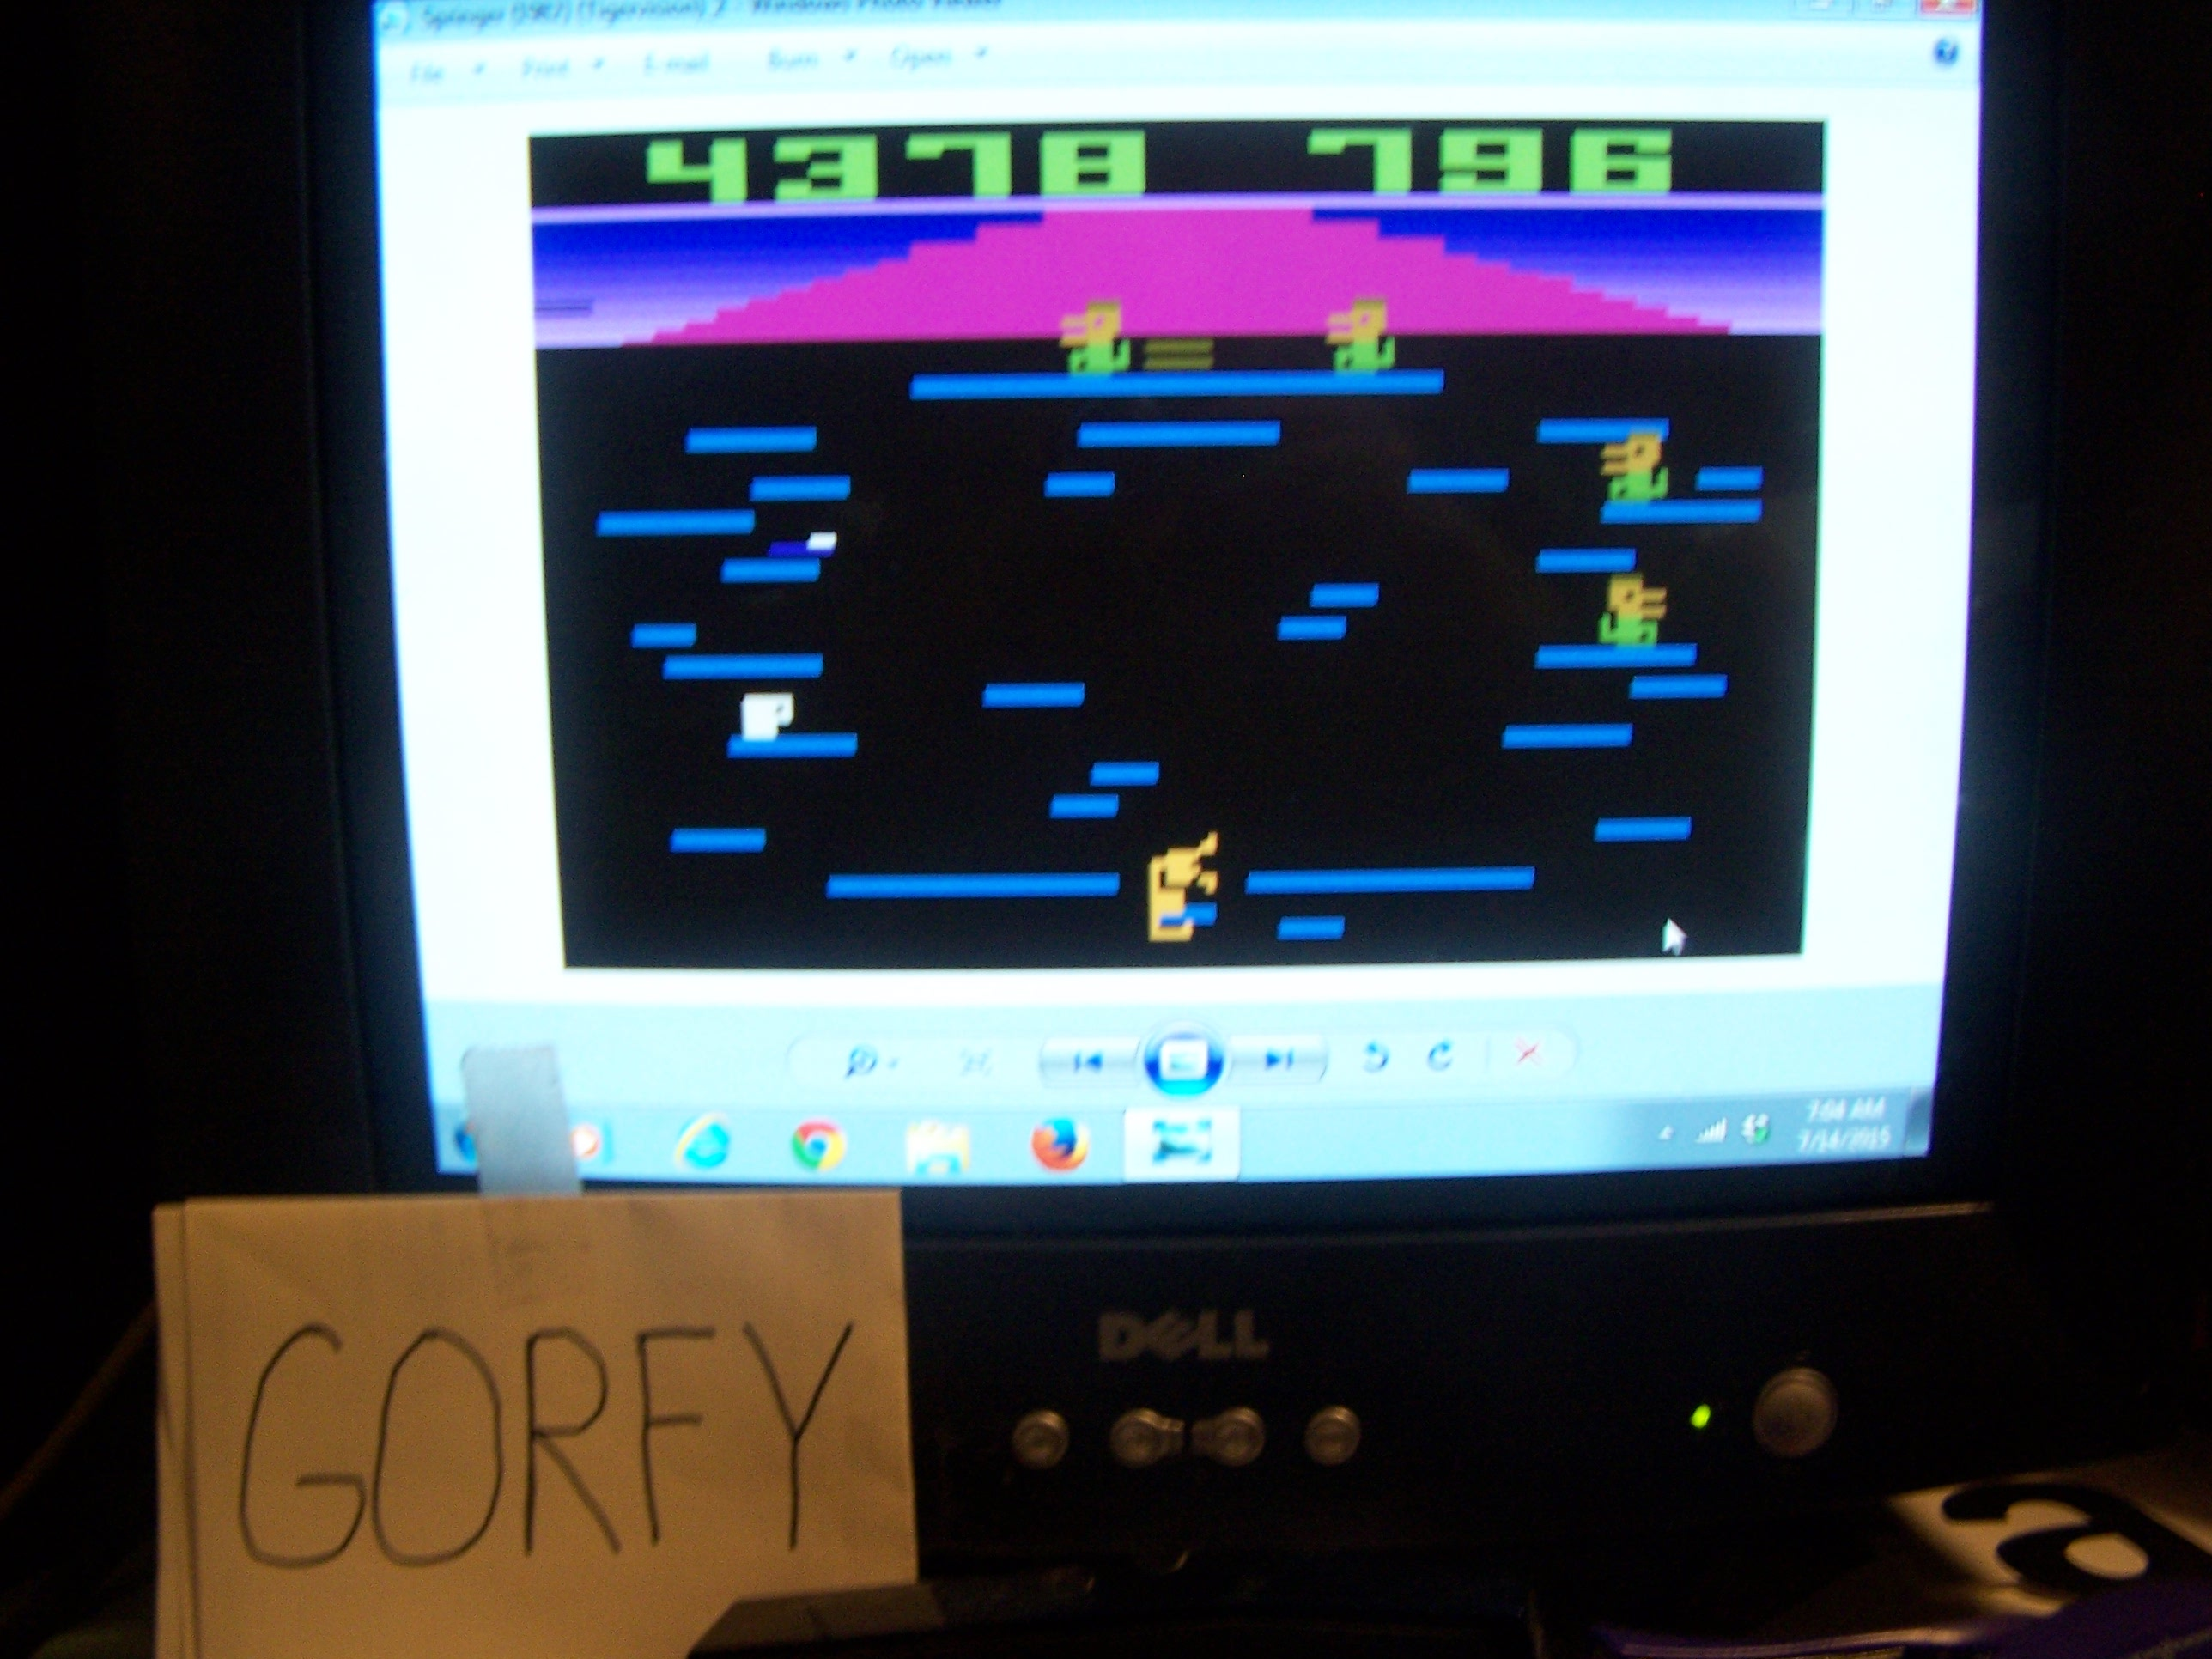 Gorfy: Springer	 (Atari 2600 Emulated Novice/B Mode) 4,378 points on 2015-07-14 06:09:38